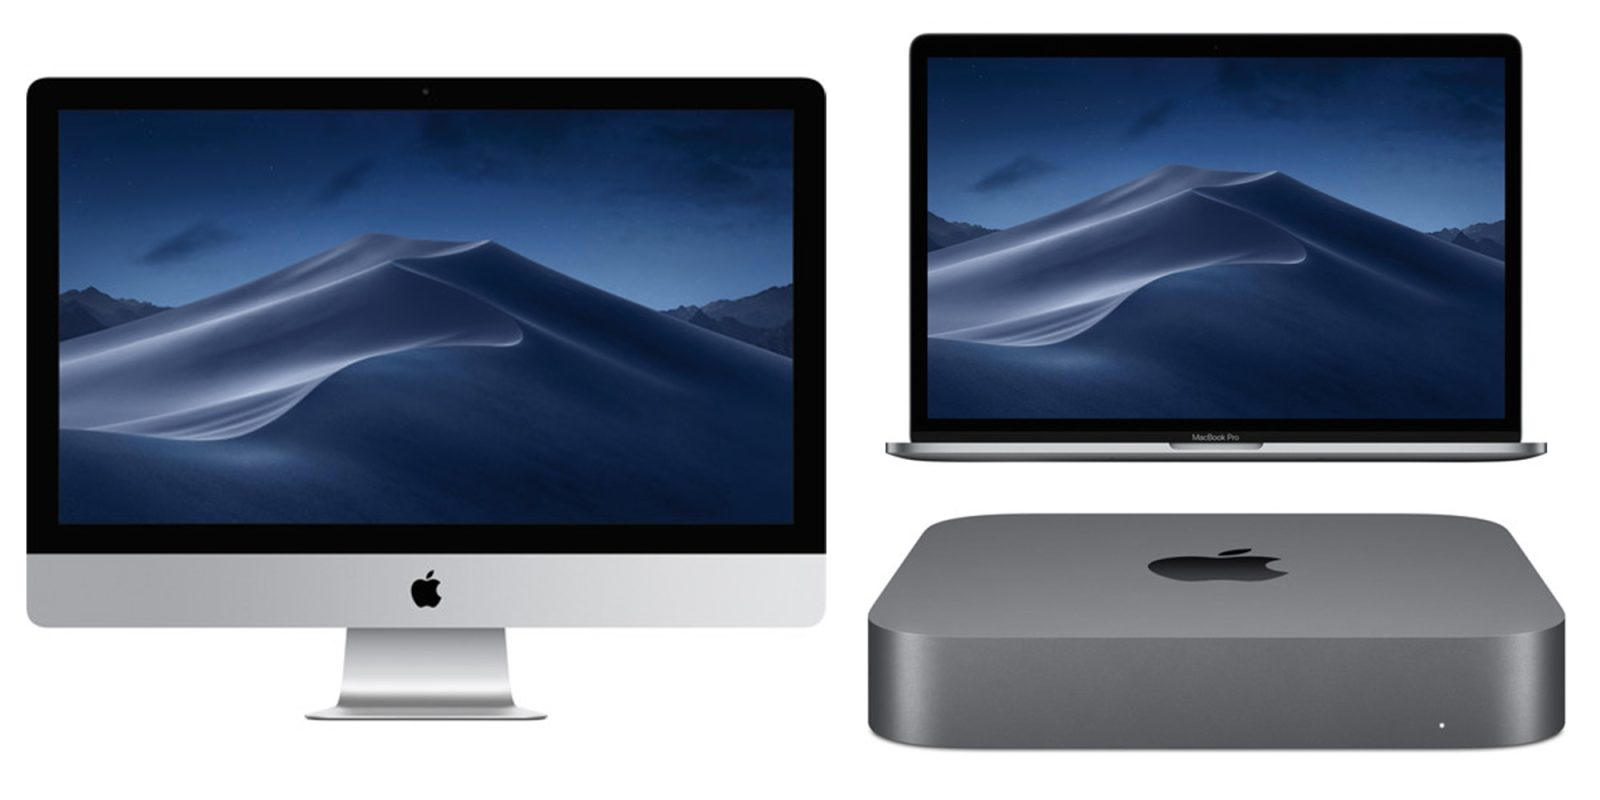 B&H launches Apple sale with up to $450 off iMacs, Mac mini, and MacBook Pro